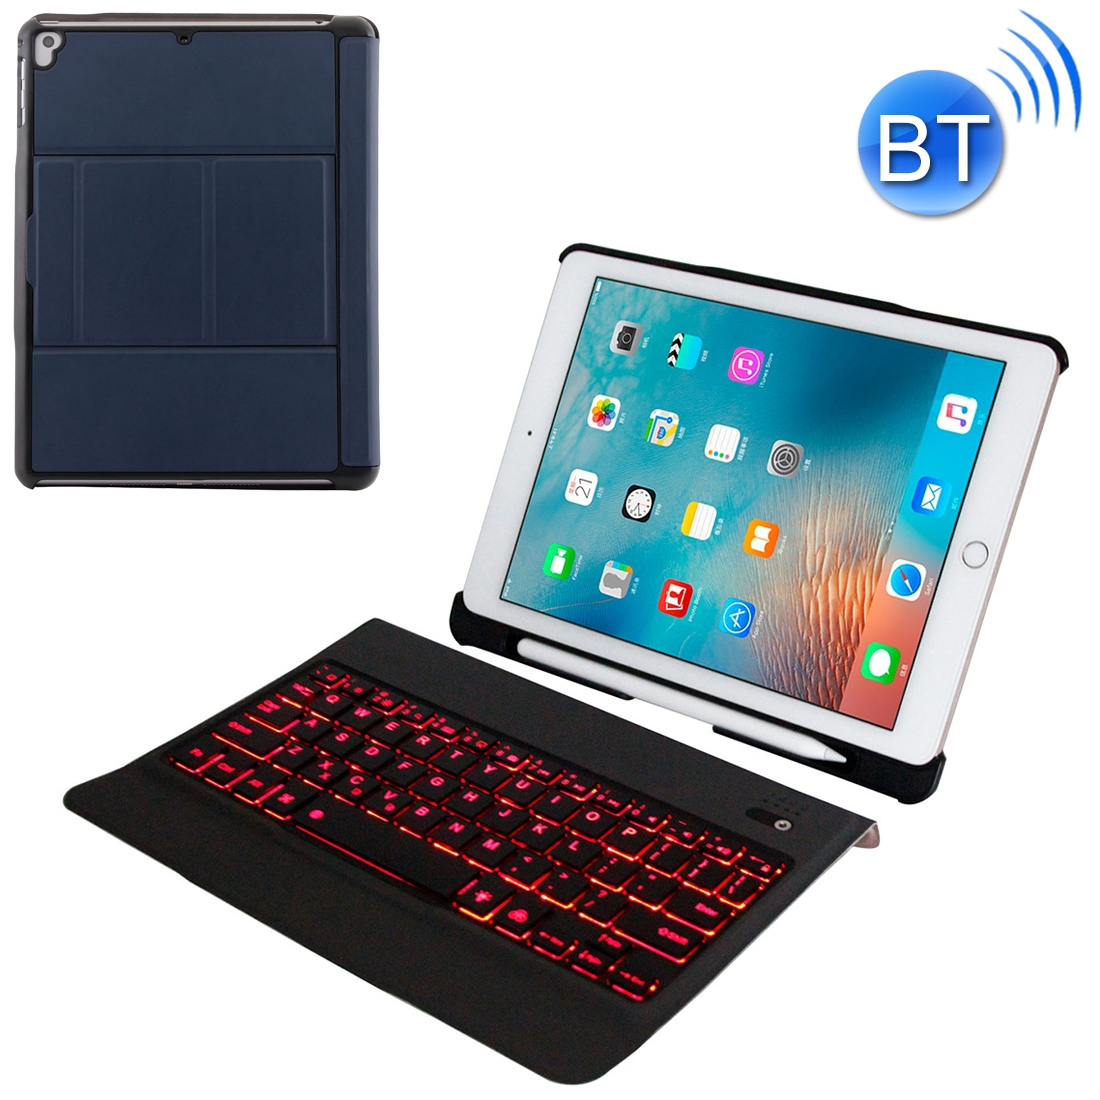 iPad Air 2 Case With Keyboard With Leather Case For iPad Air/Air 2/Pro 9.7 inch  (Blue)